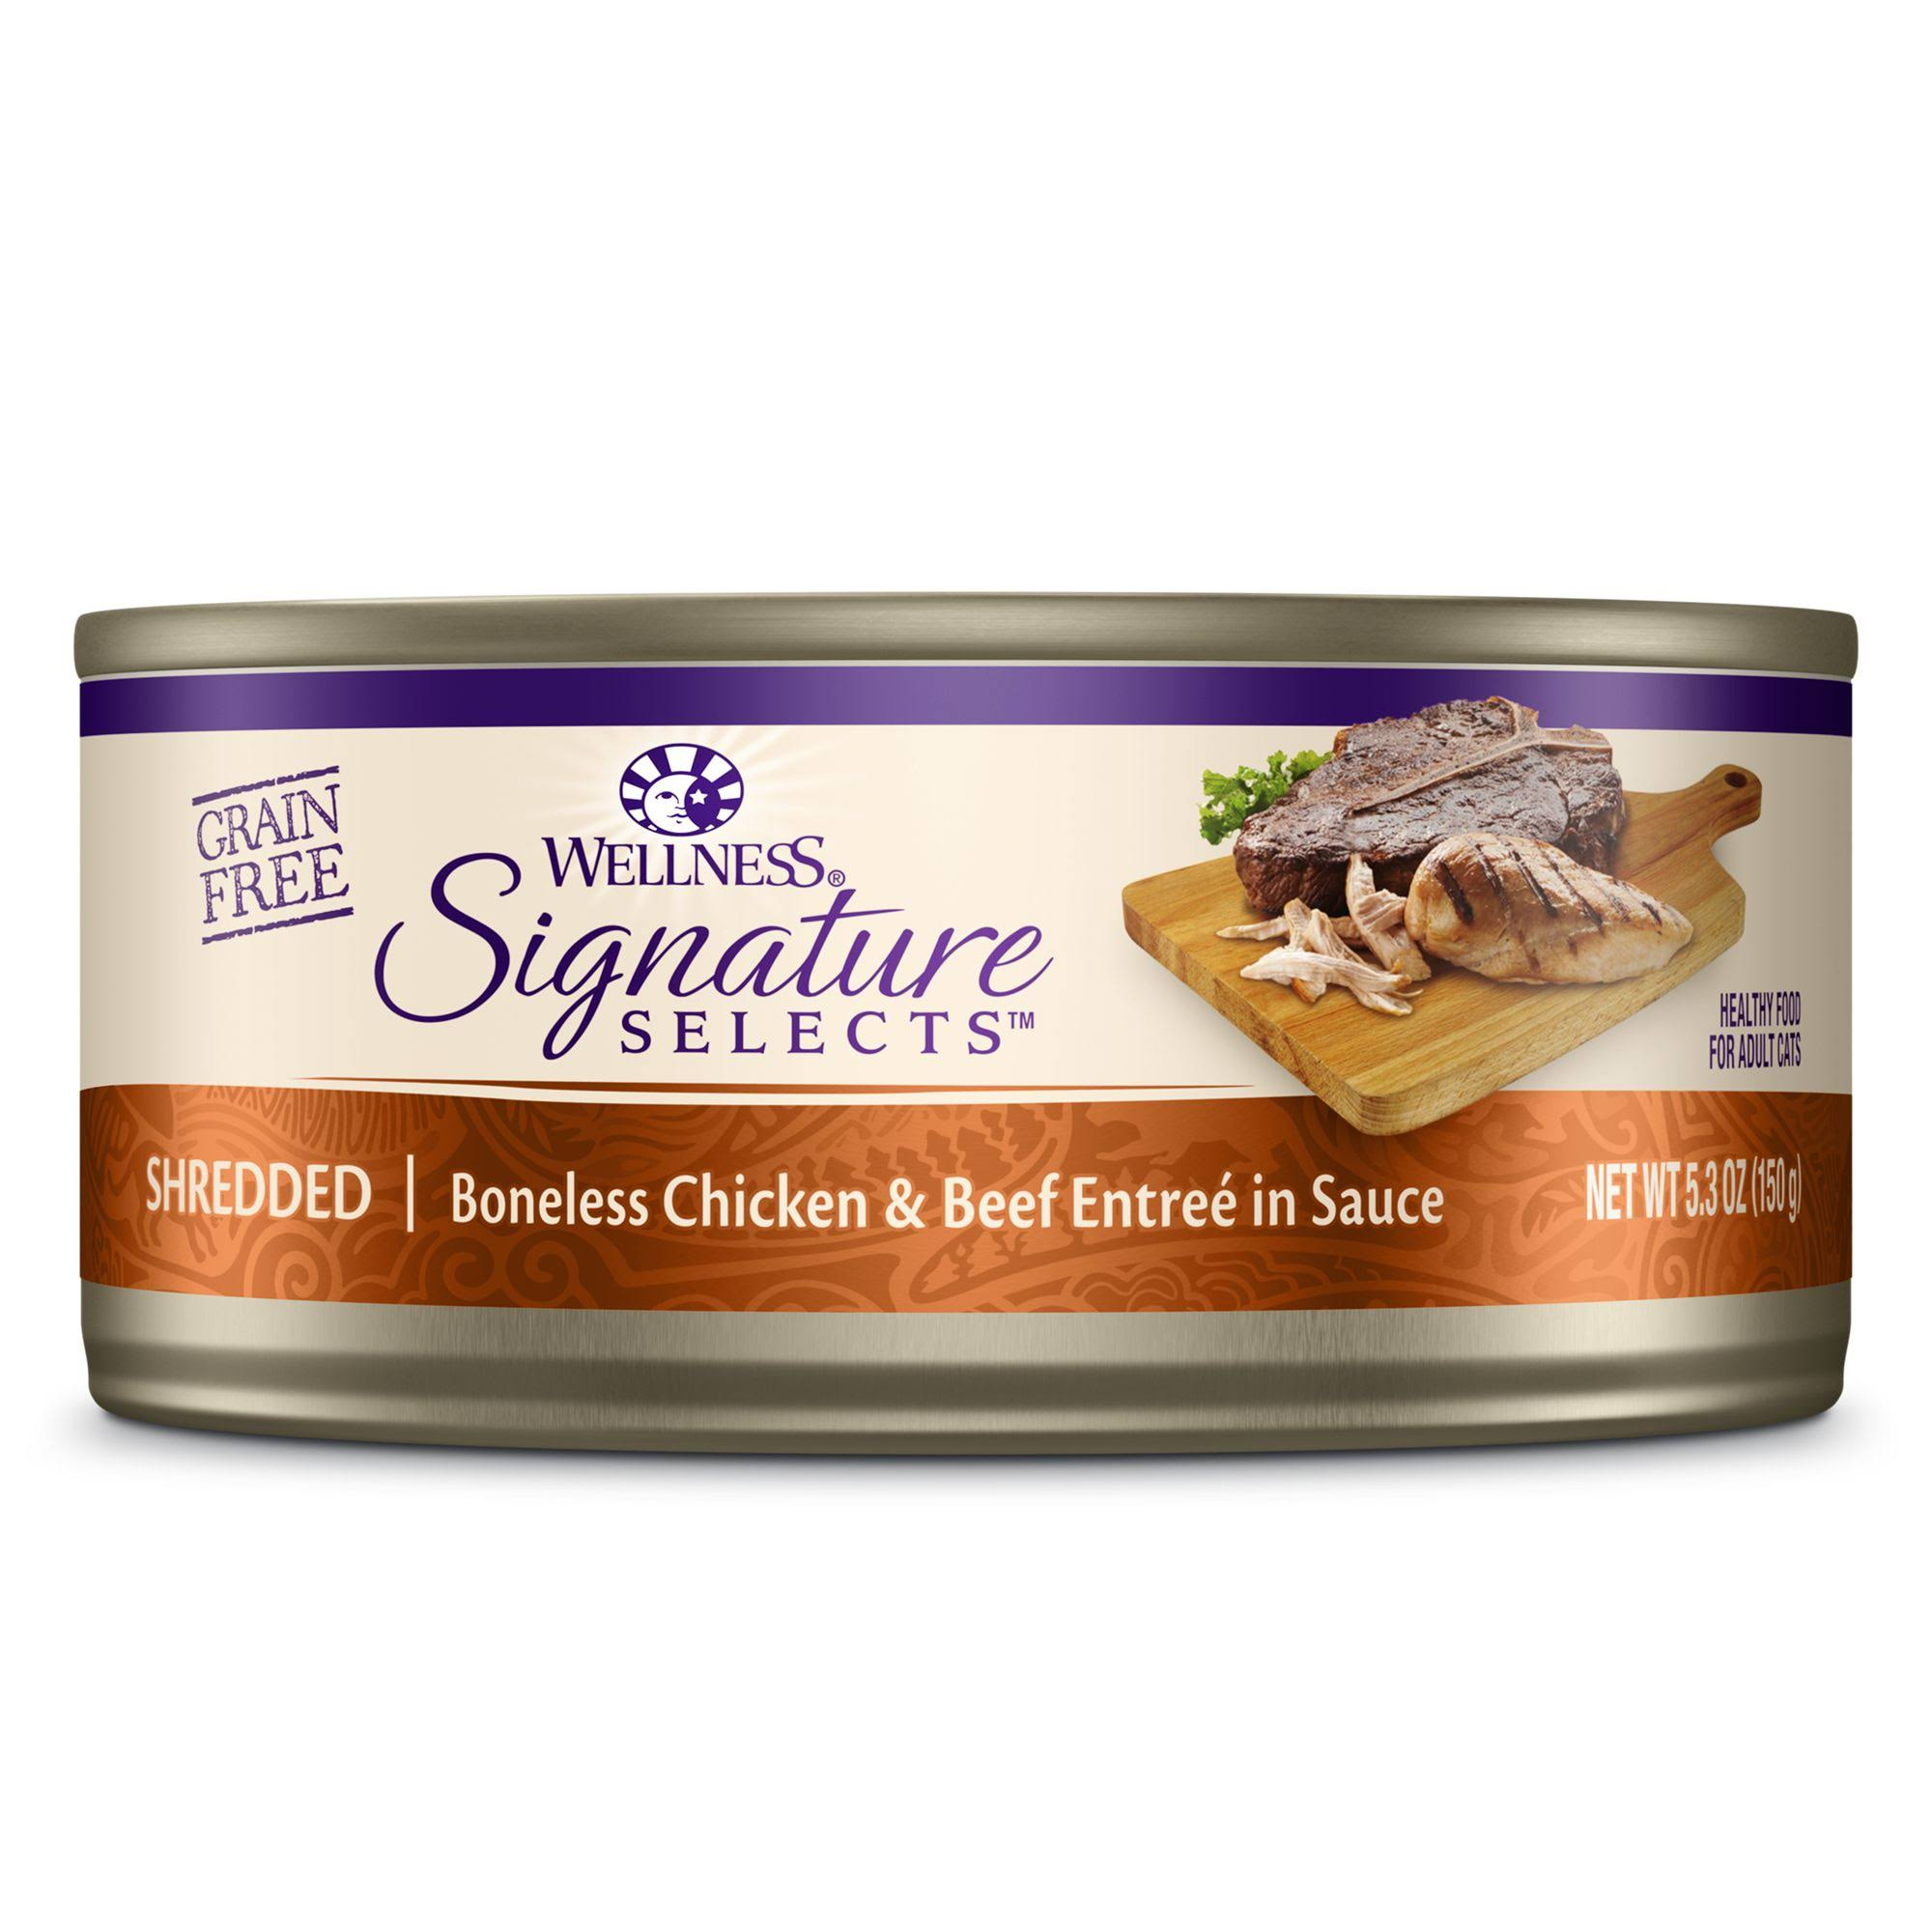 Wellness Signature Selects Grain Free Canned Cat Food - Shredded White Meat Chicken & Beef Entree